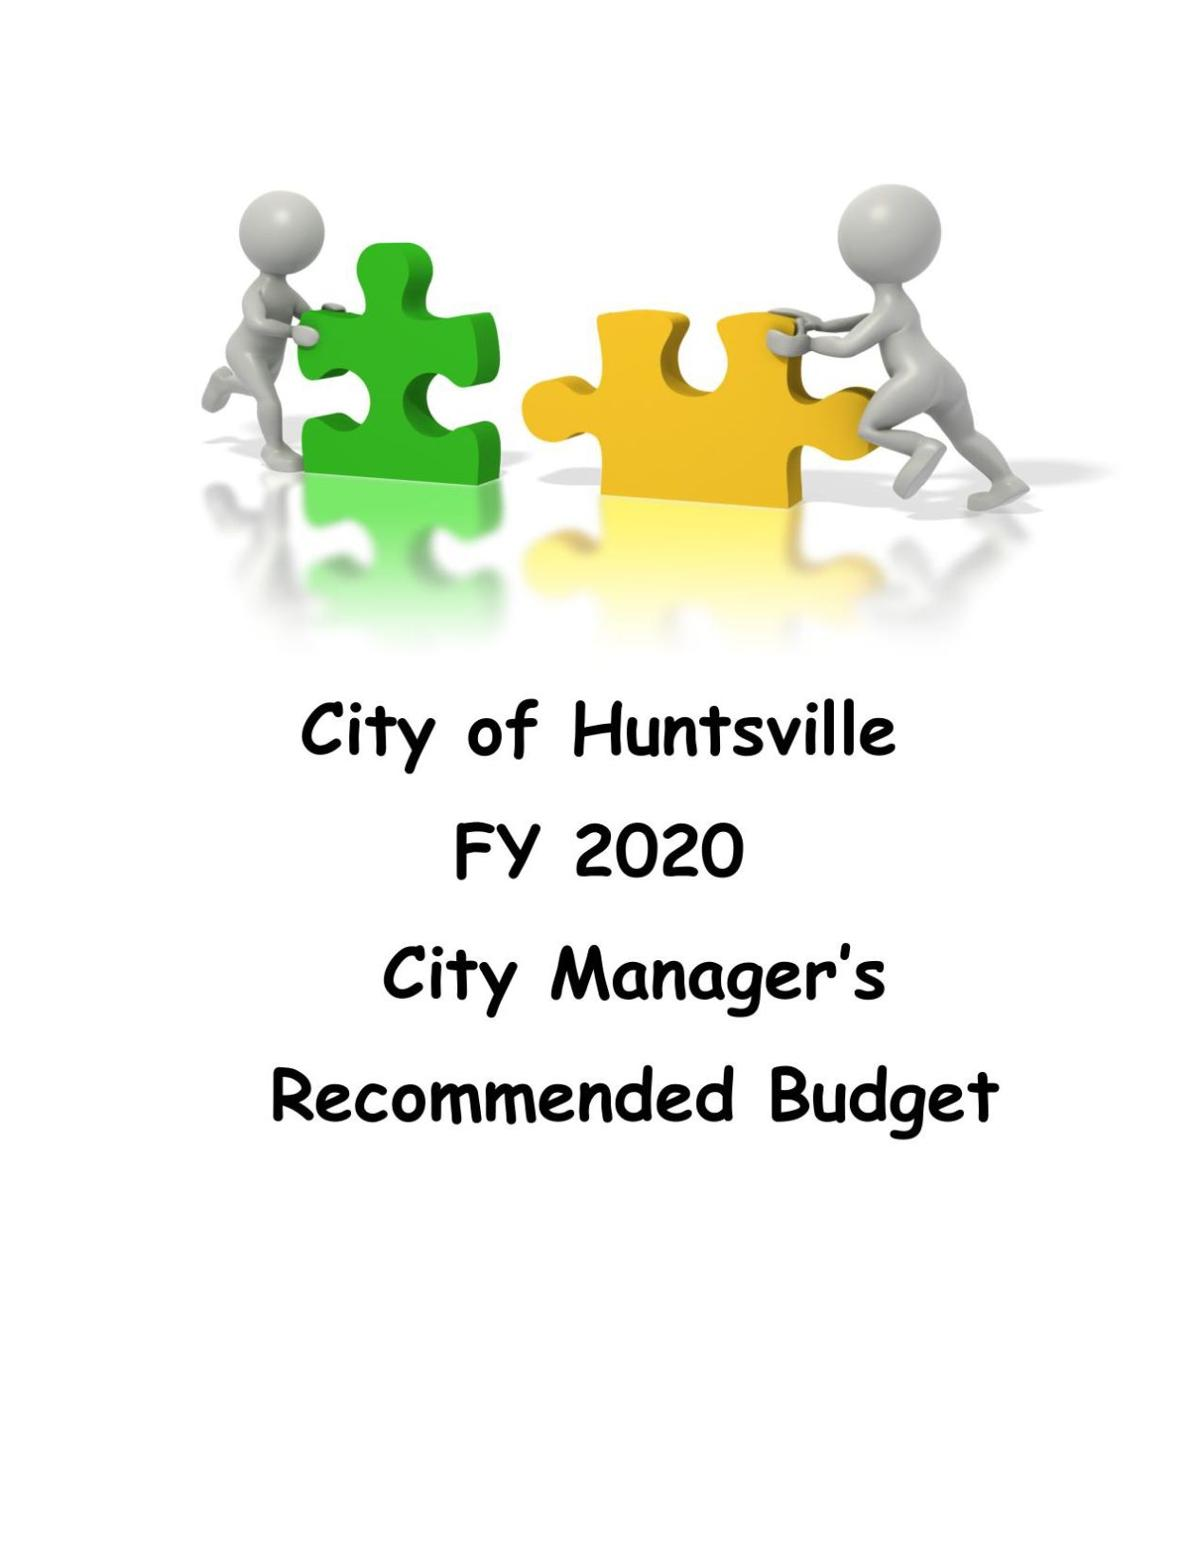 City of Huntsville recommended budget